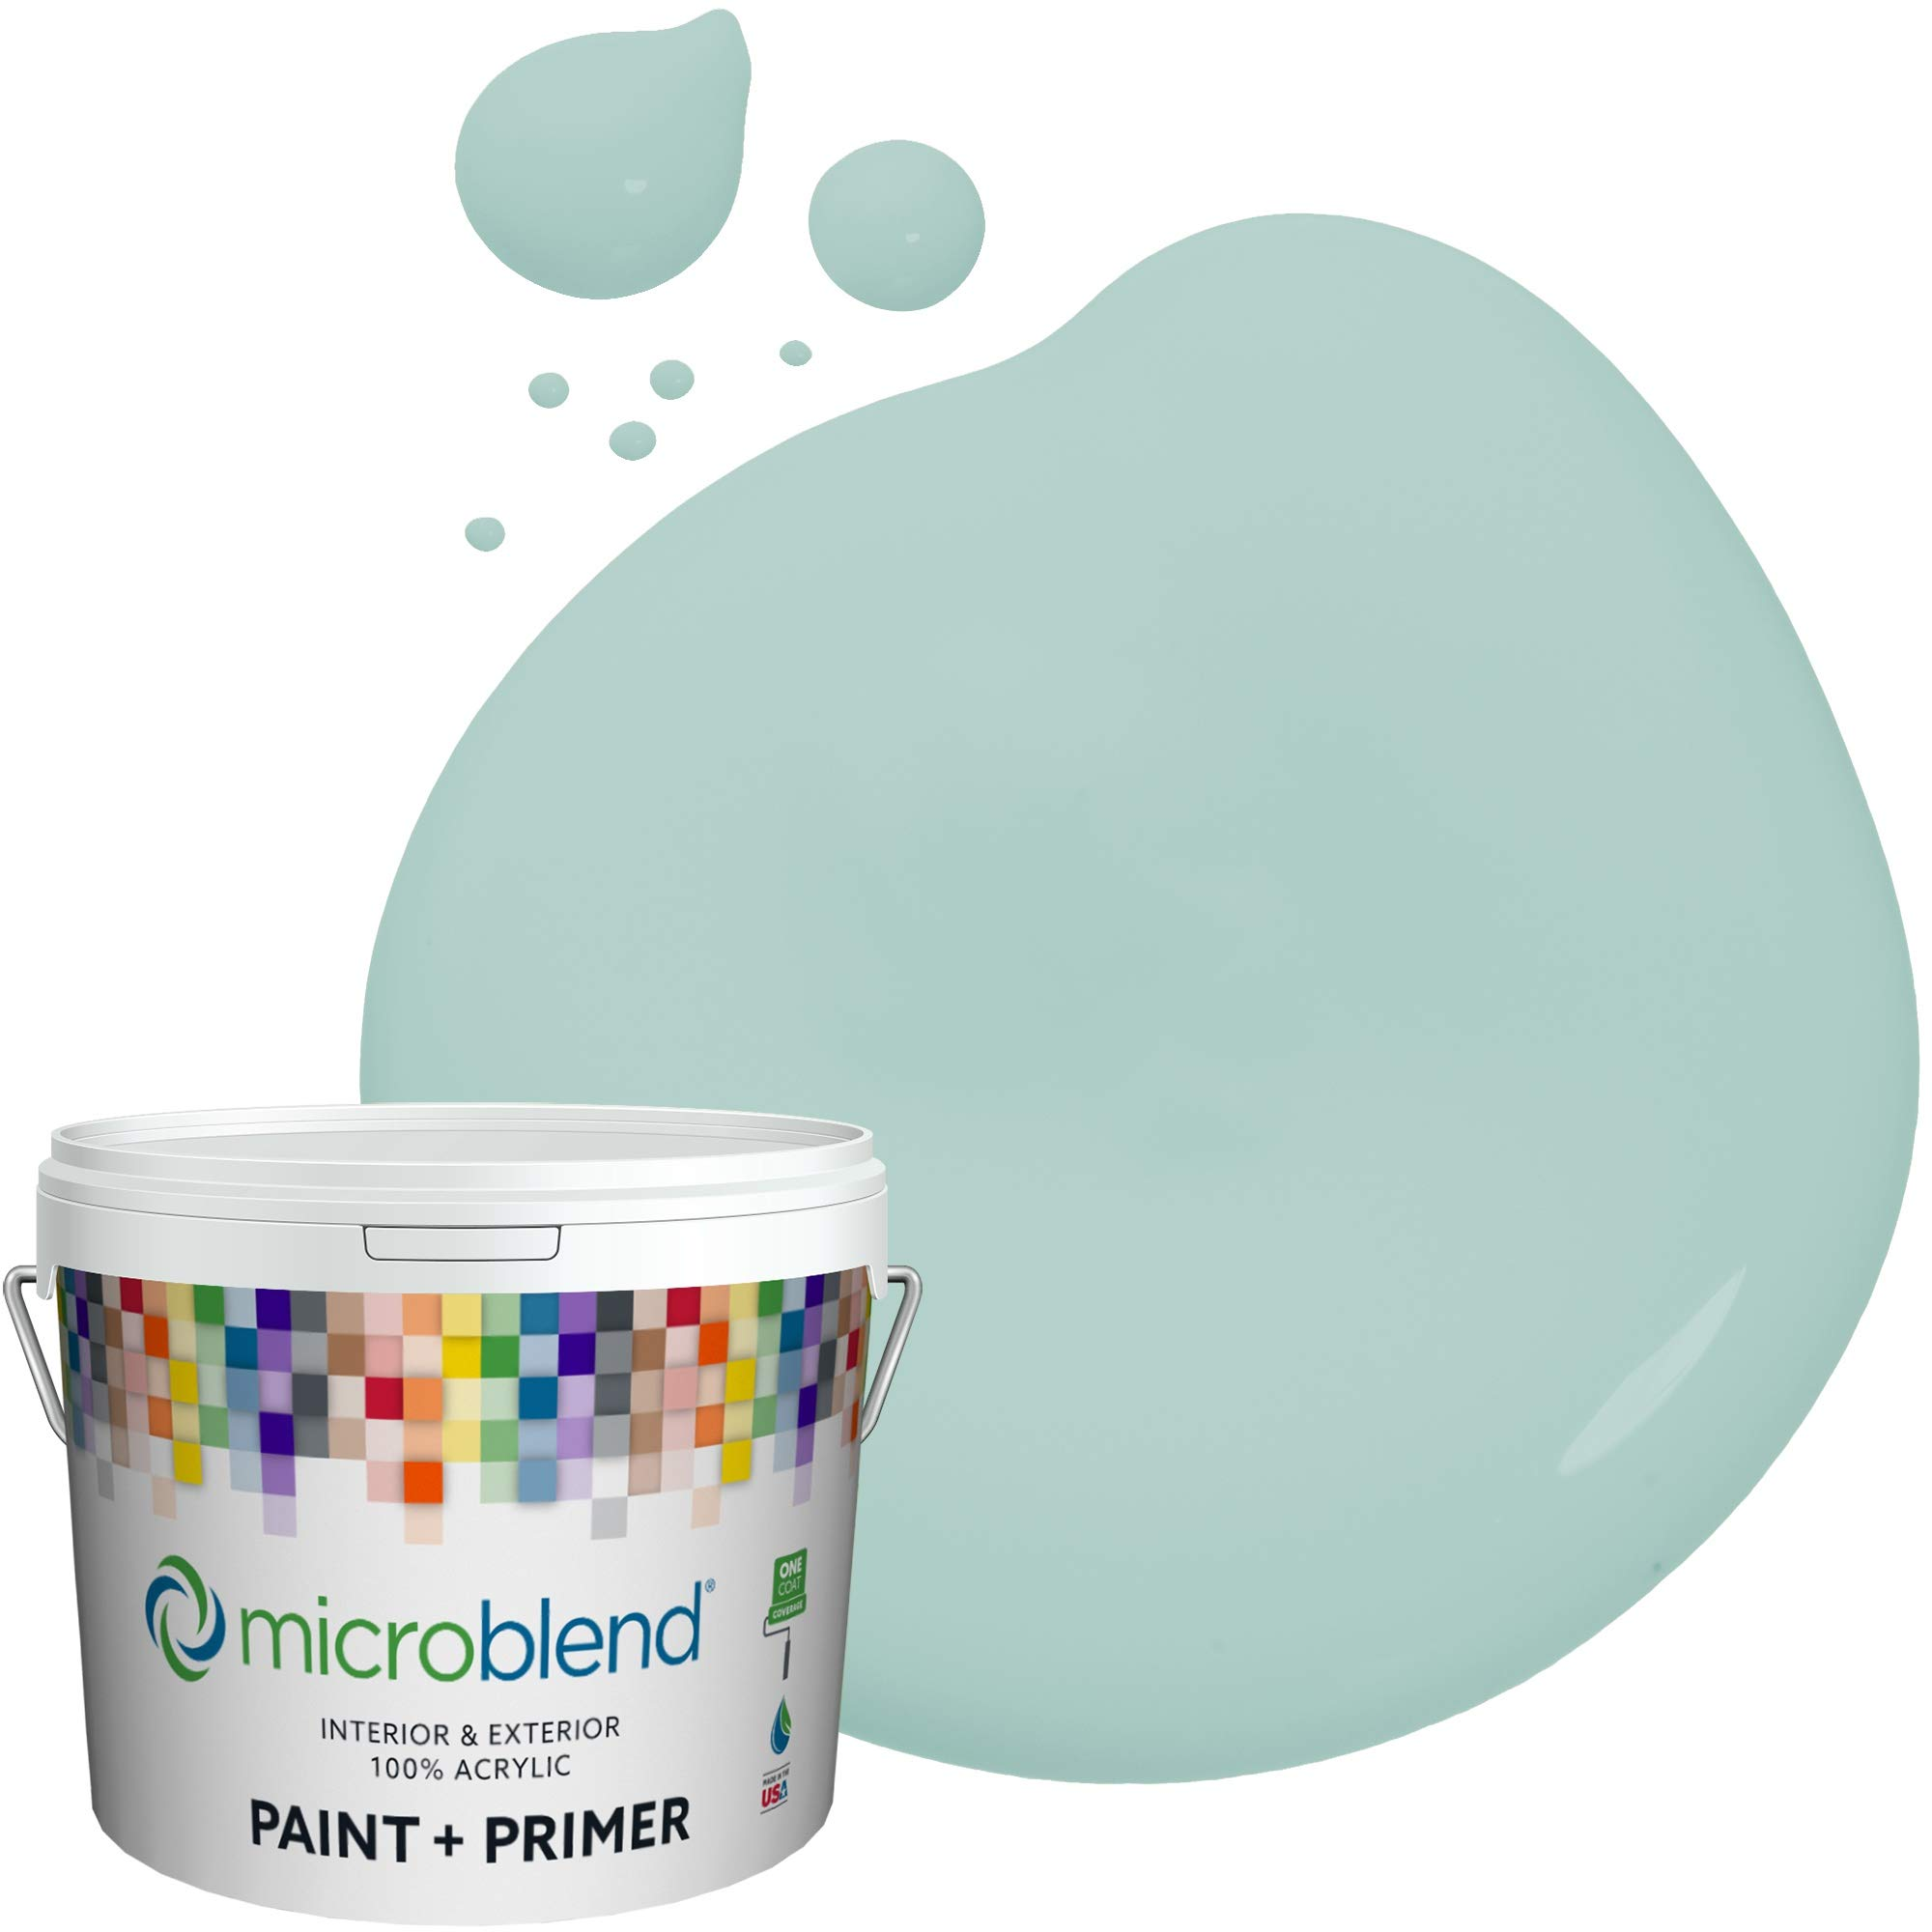 MicroBlend Interior Paint + Primer, Shower of Spring, Semi-Gloss Sheen, 1 Gallon, Custom Made, Premium Quality One Coat Hide & Washable Paint (73240-2-M0455B3)